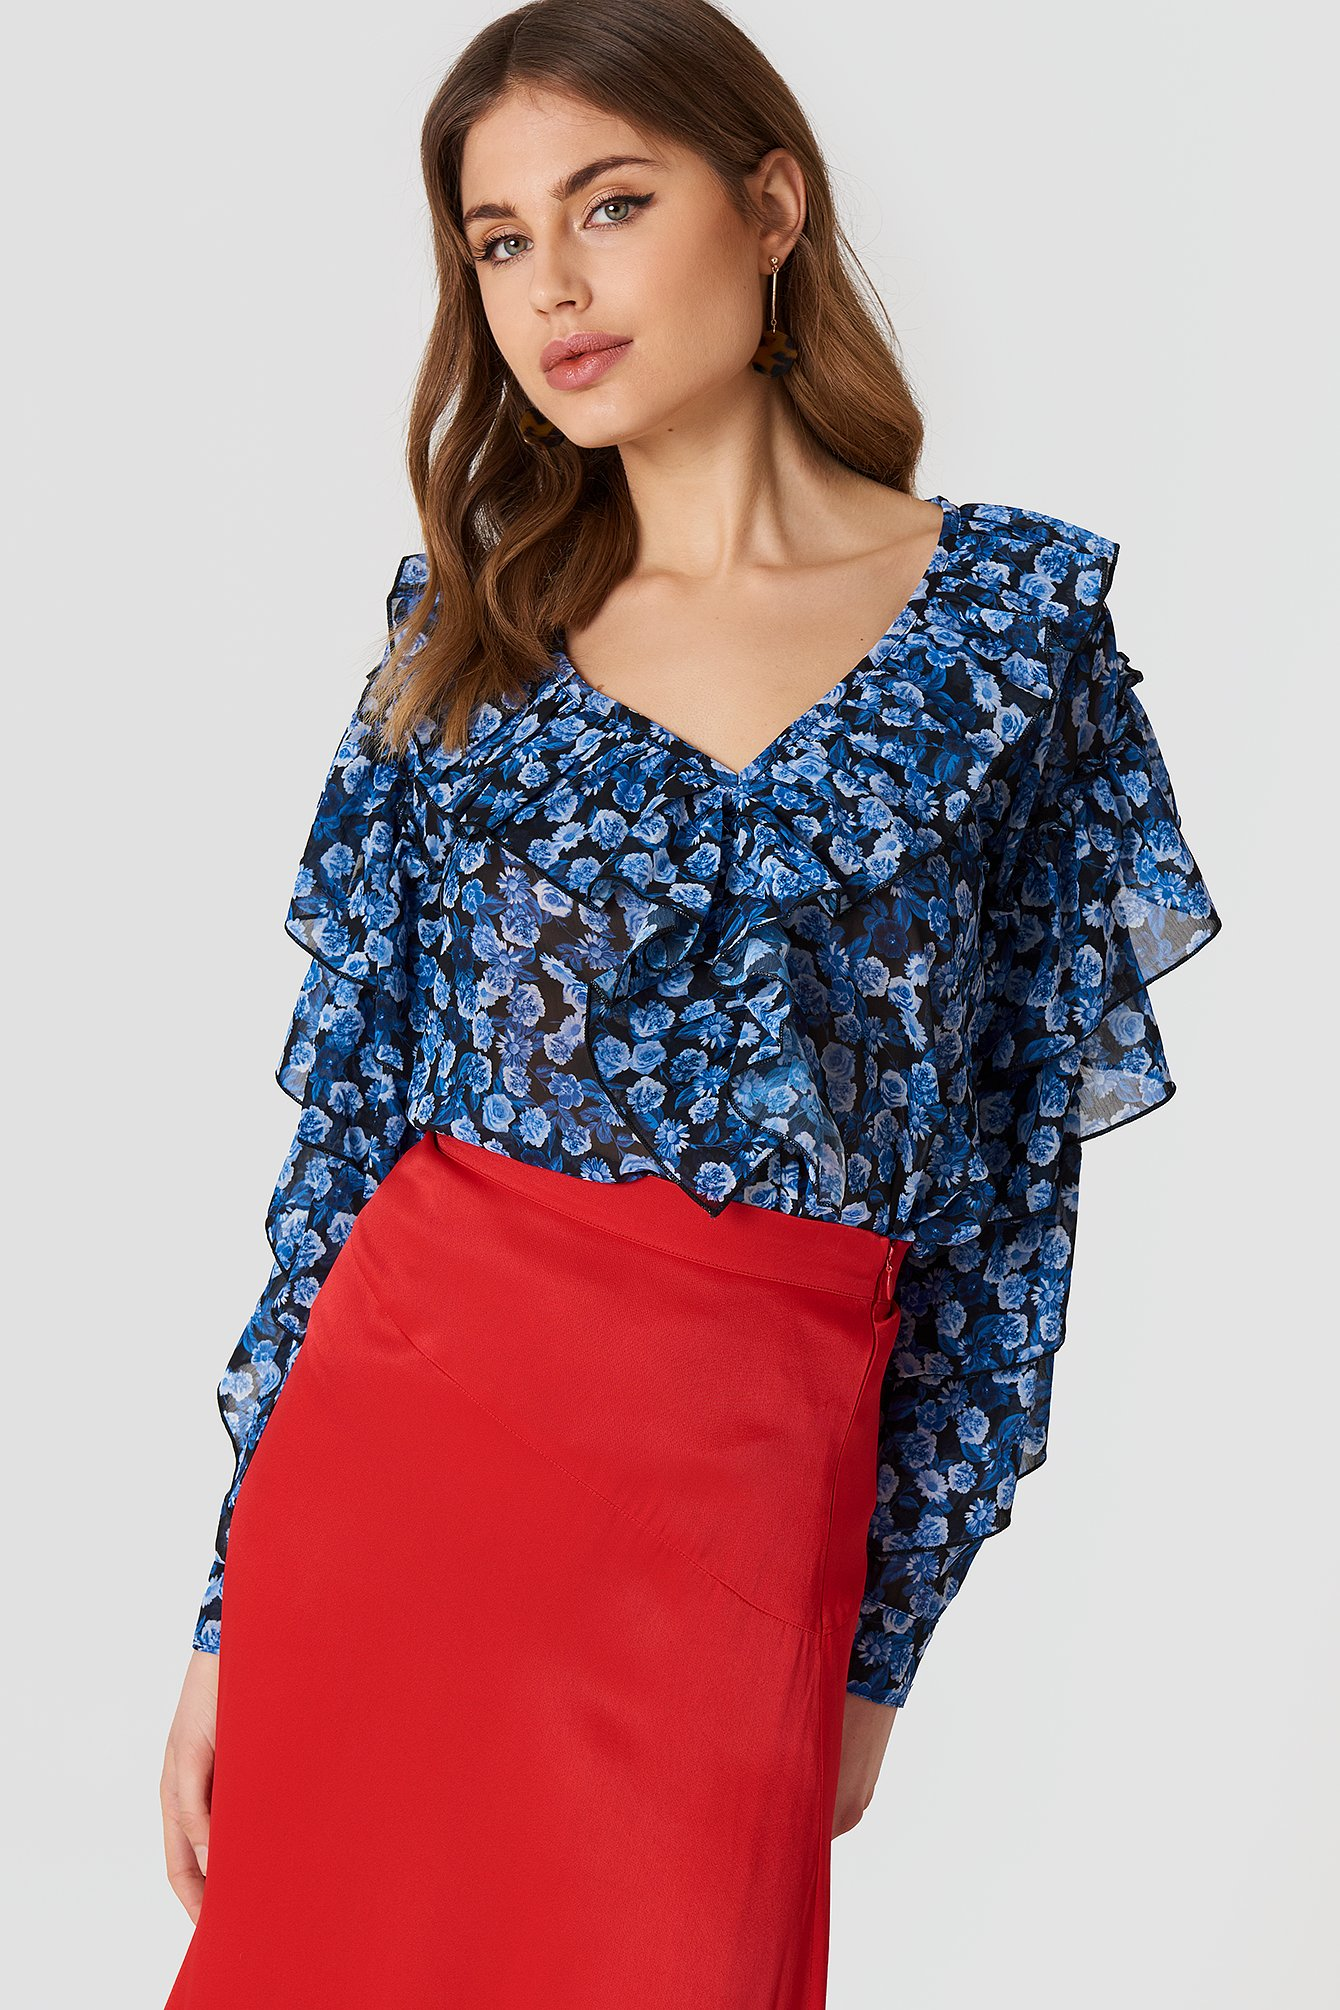 Small Blue Flowers Chiffon Frill V-Neck Blouse